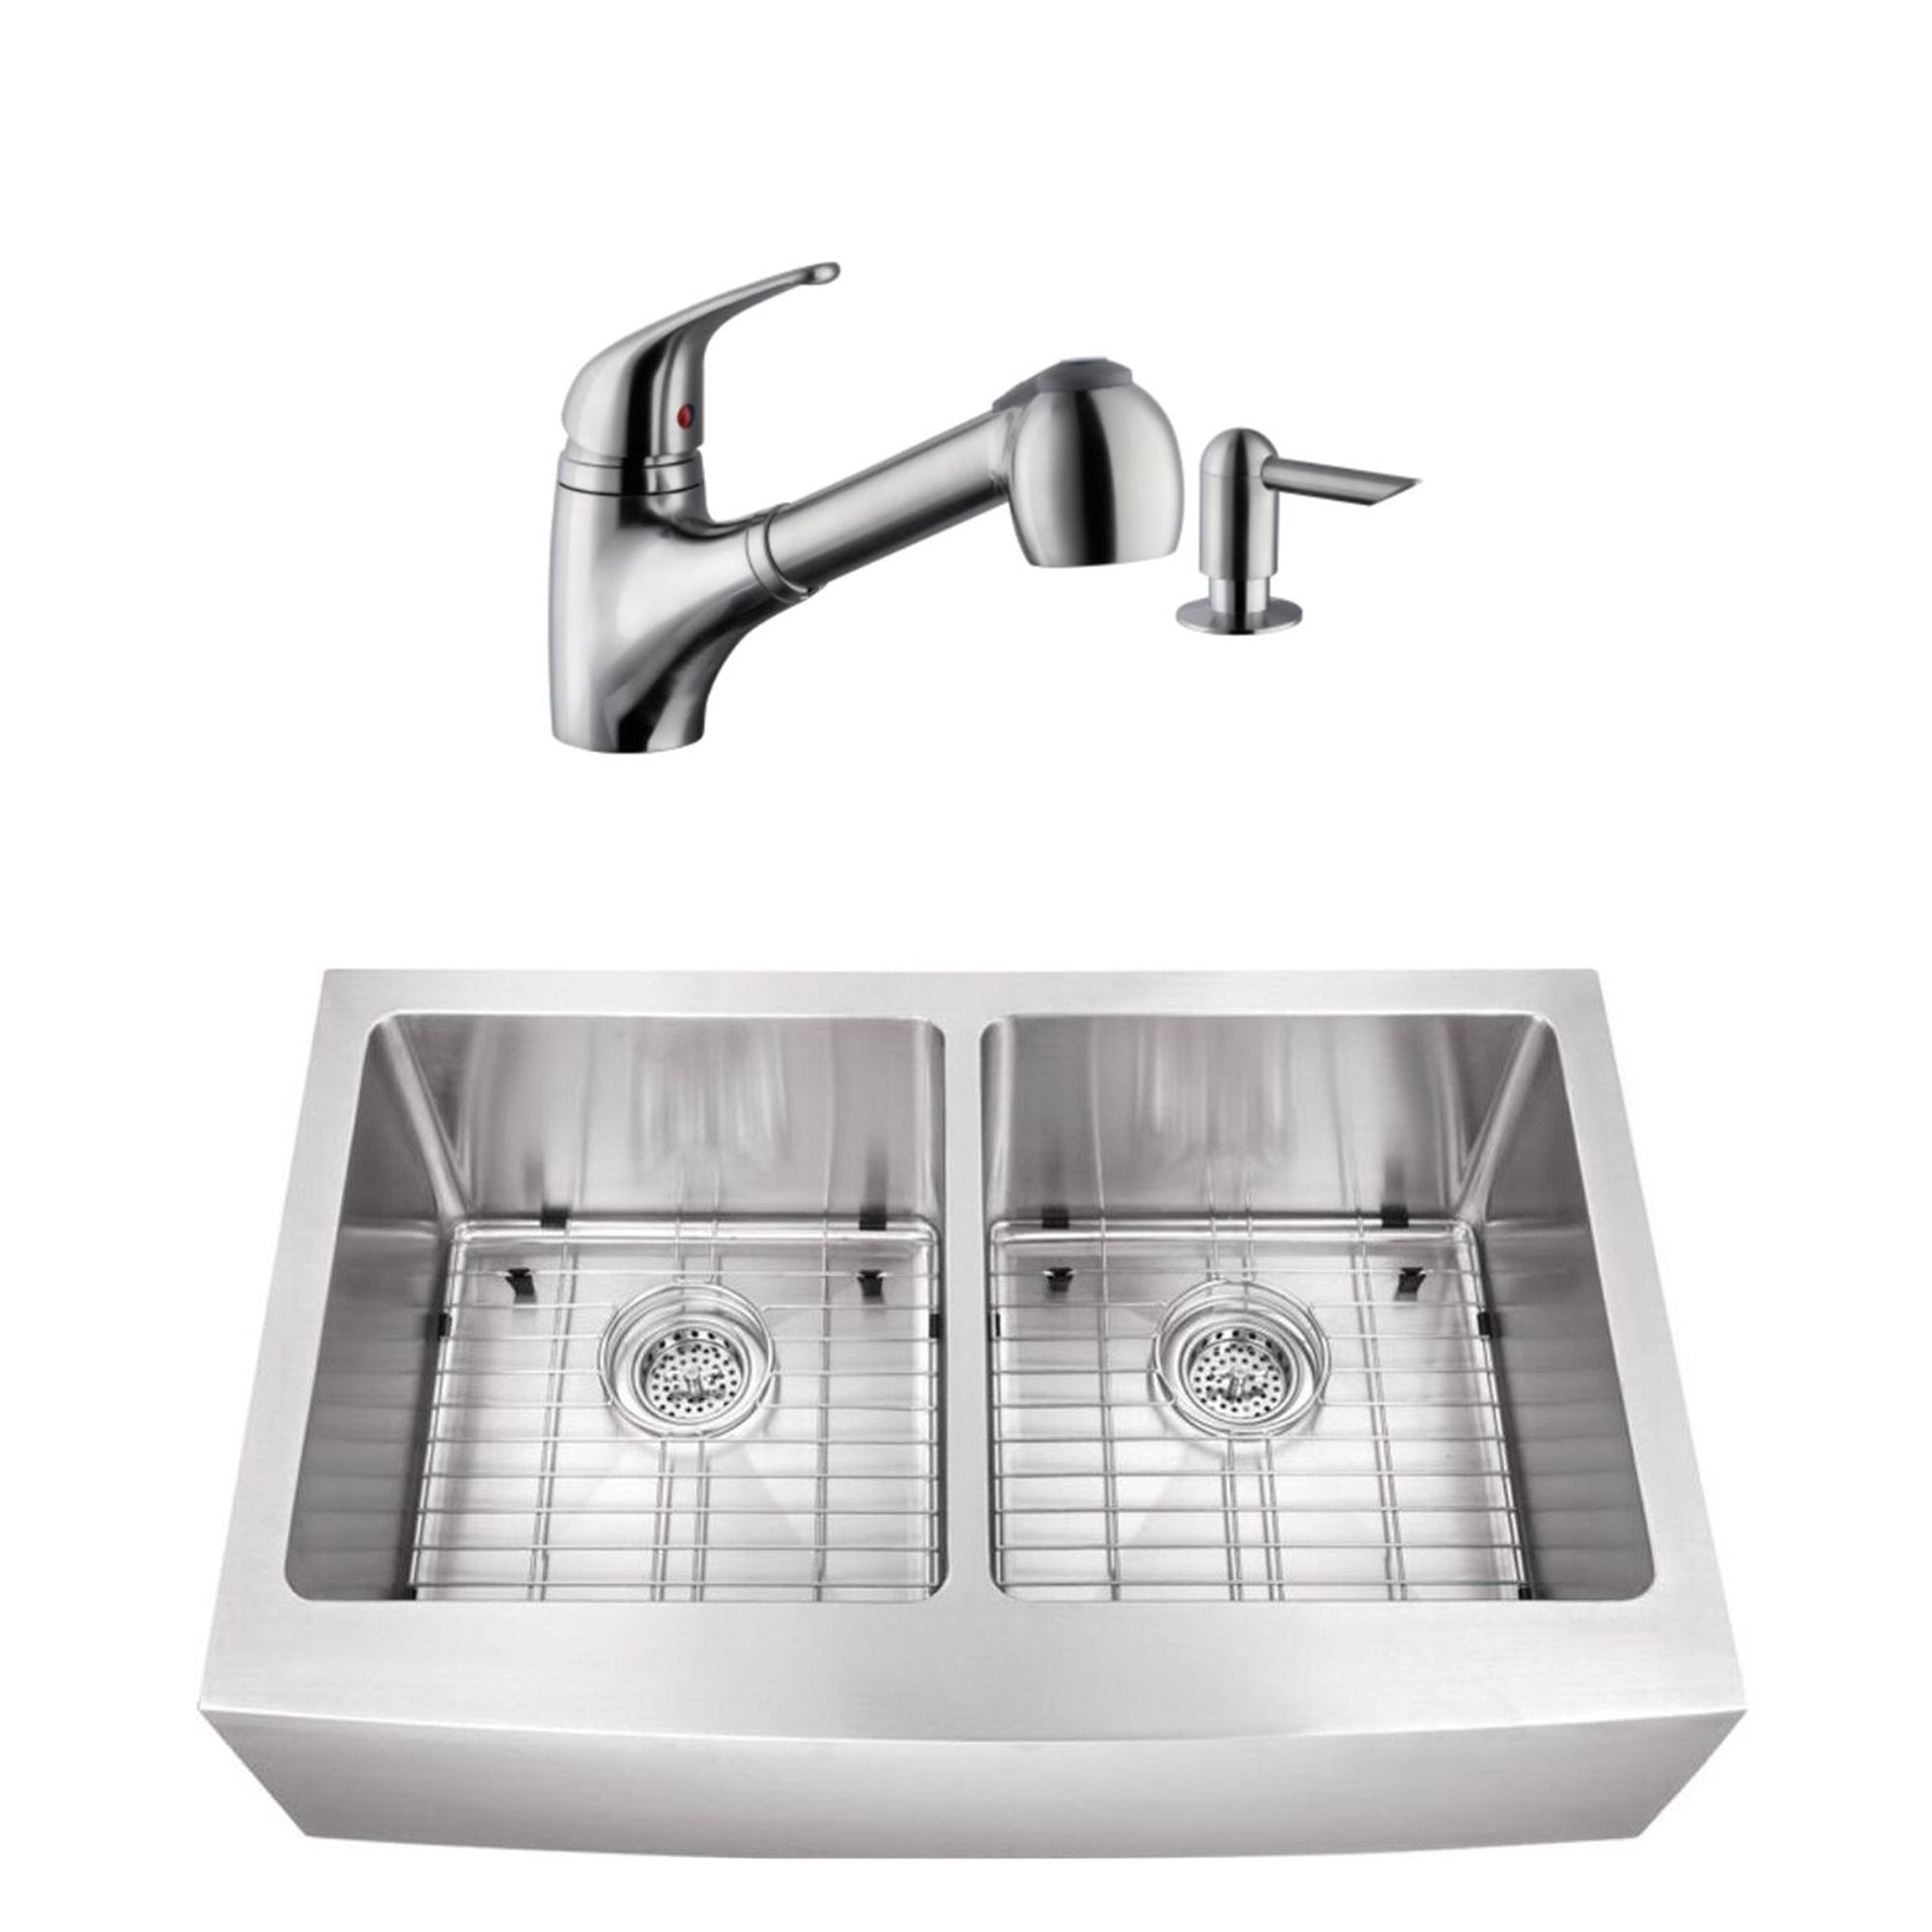 Cahaba Undermount 32 7 8 In 50 50 Bowl Apron Front 16 Ga Stainless Steel Kitchen Sink And Low Profile 1 Handle Pull Out Kitchen Faucet With Dispenser In Brushed Nickel In 2019 Stainless Steel Kitchen